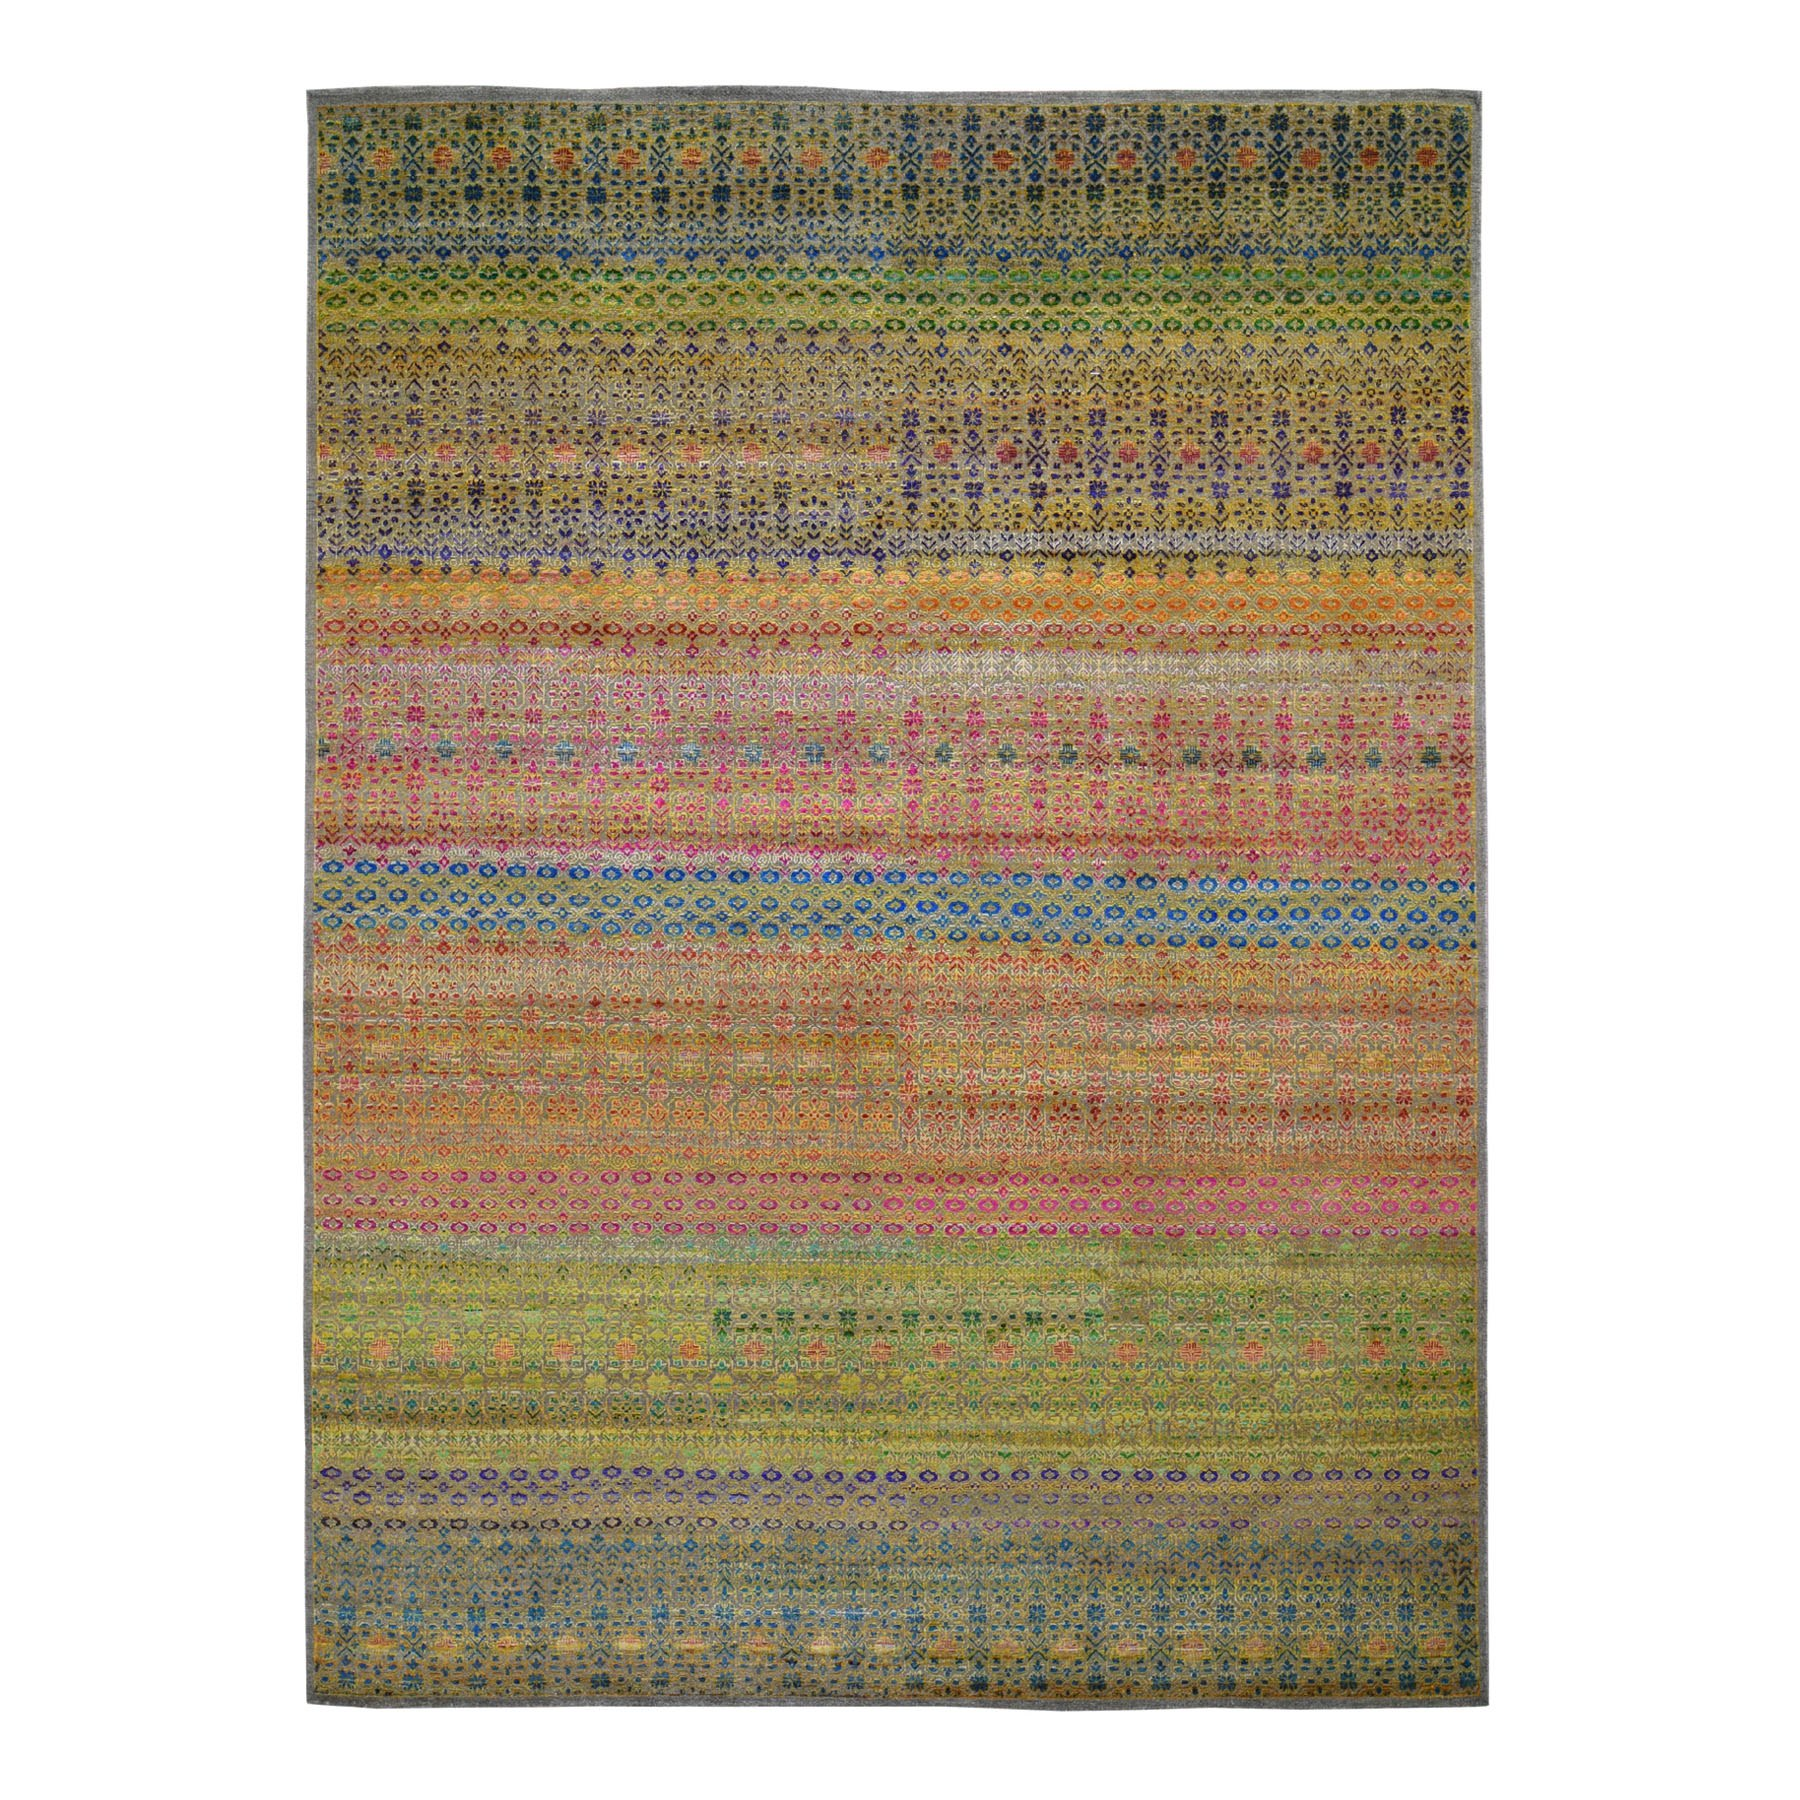 "8'10""X12' Colorful Grass Design Sari Silk Textured Wool Modern Hand Knotted Oriental Rug moad8c67"